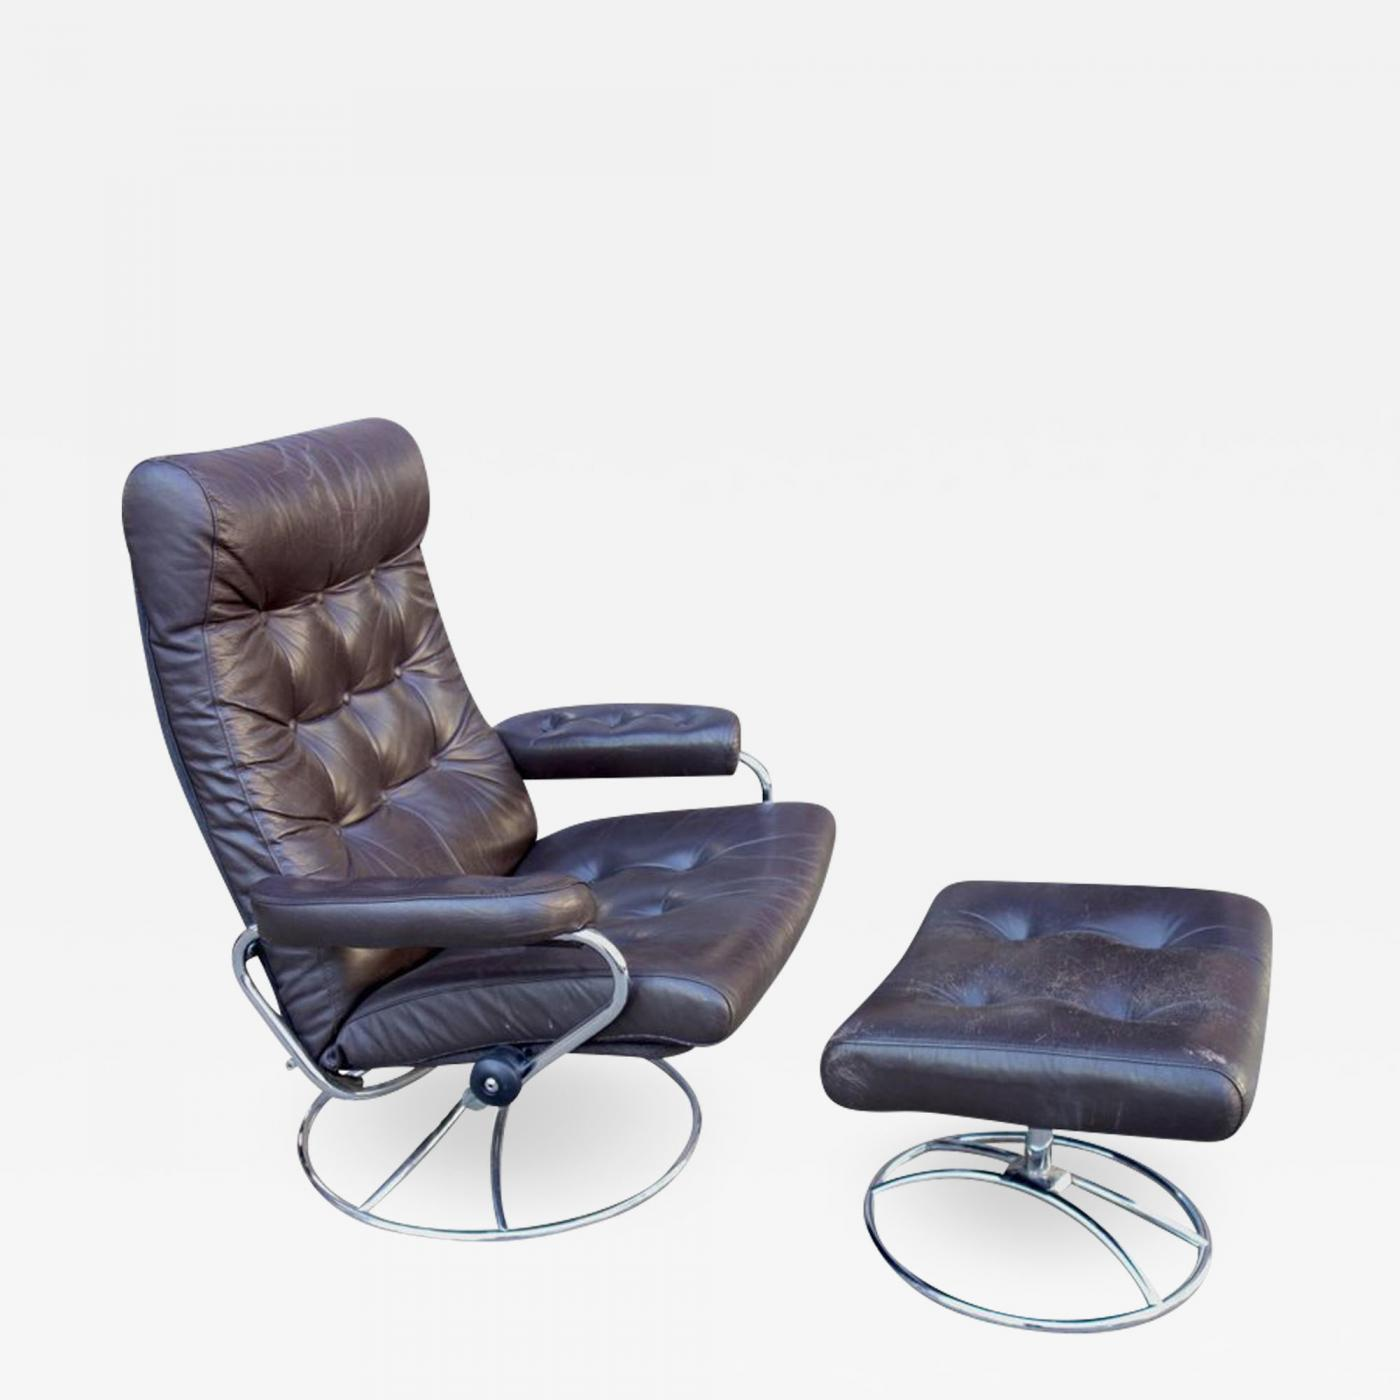 mid century recliner. Ekornes Stressless Midcentury Reclining Lounge Chair And Ottoman By Ekornes. Tap To Expand Mid Century Recliner